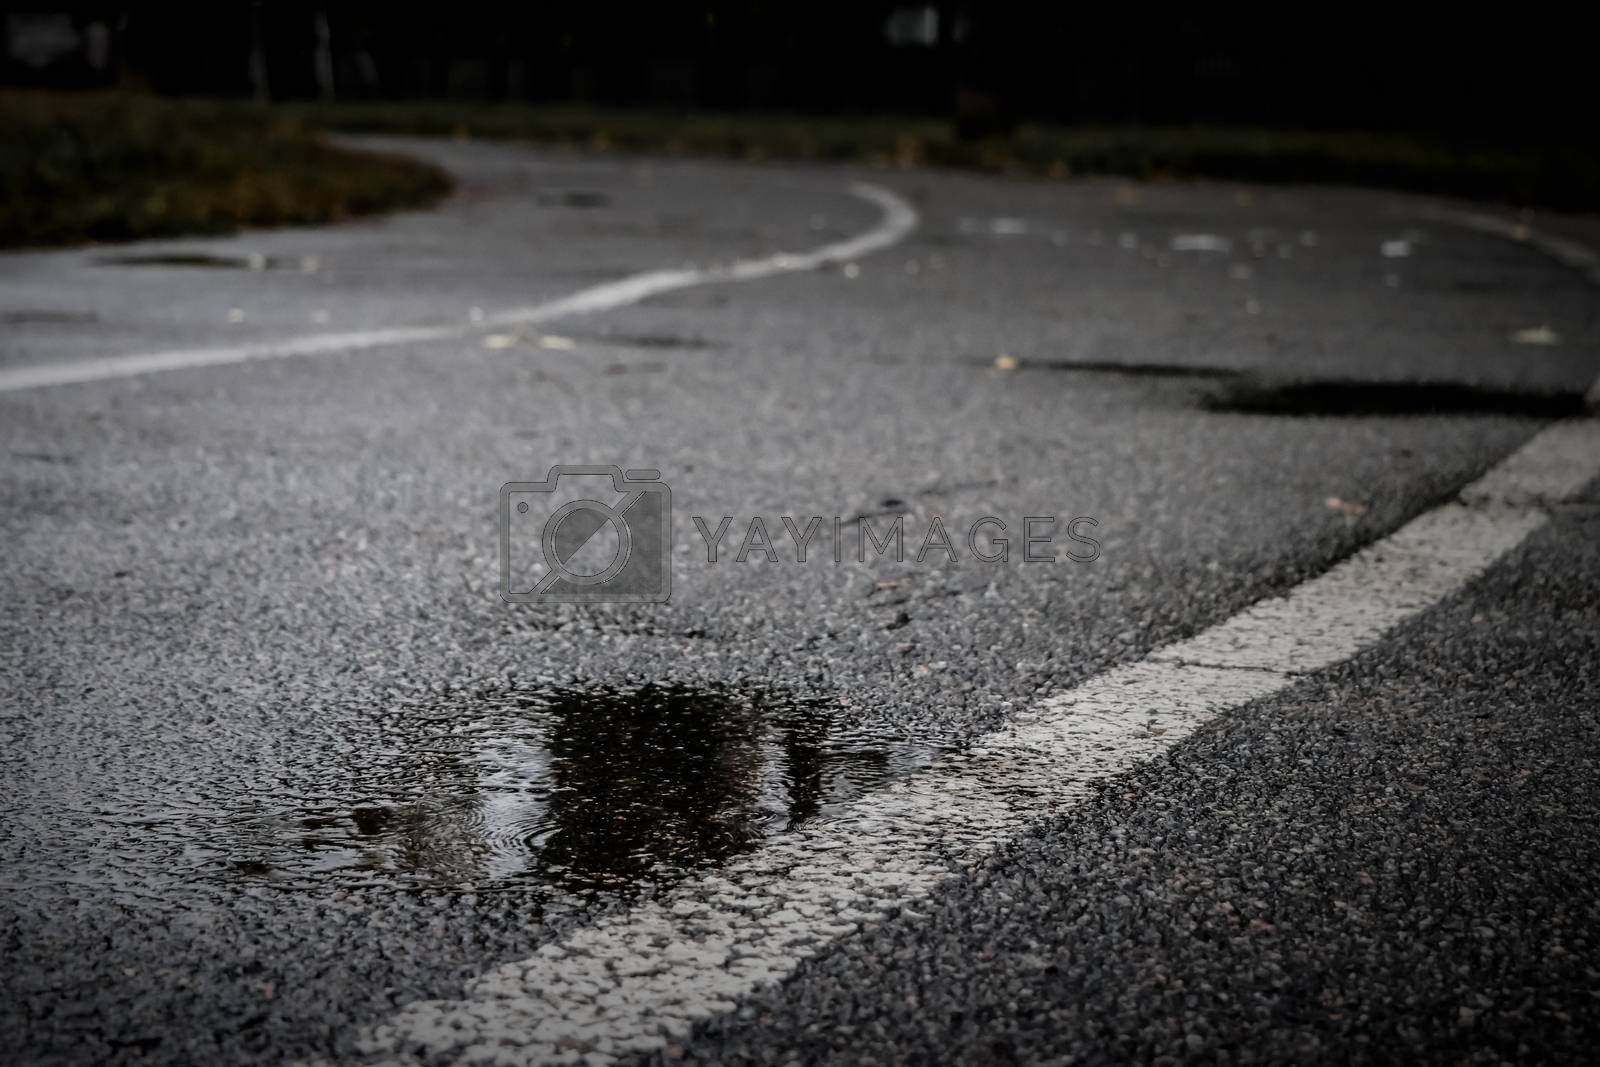 Asphalt track at an old school stadium during a rain with a puddle in the foreground. Dark autumn day